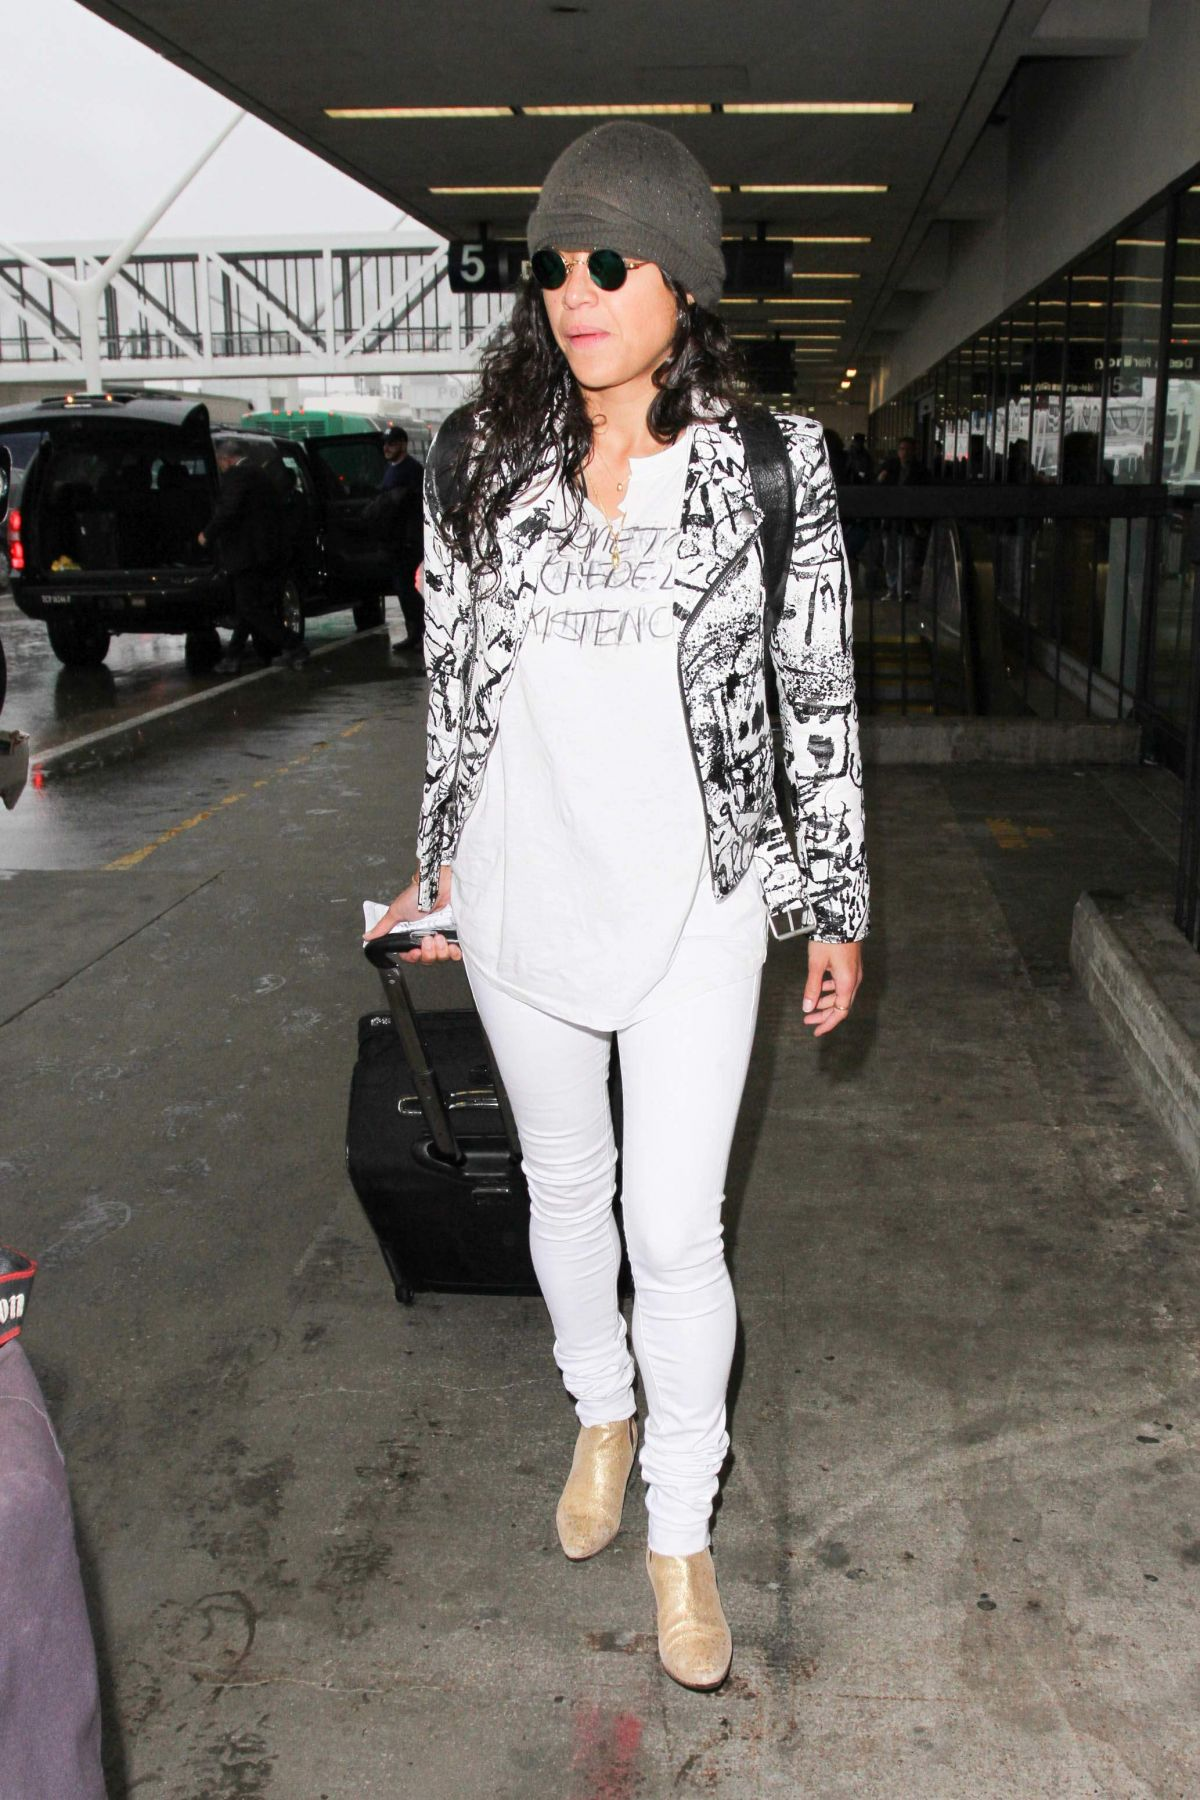 MICHELLE RODRIGUEZ at LAX Airport in Los Angeles 01/20/2017